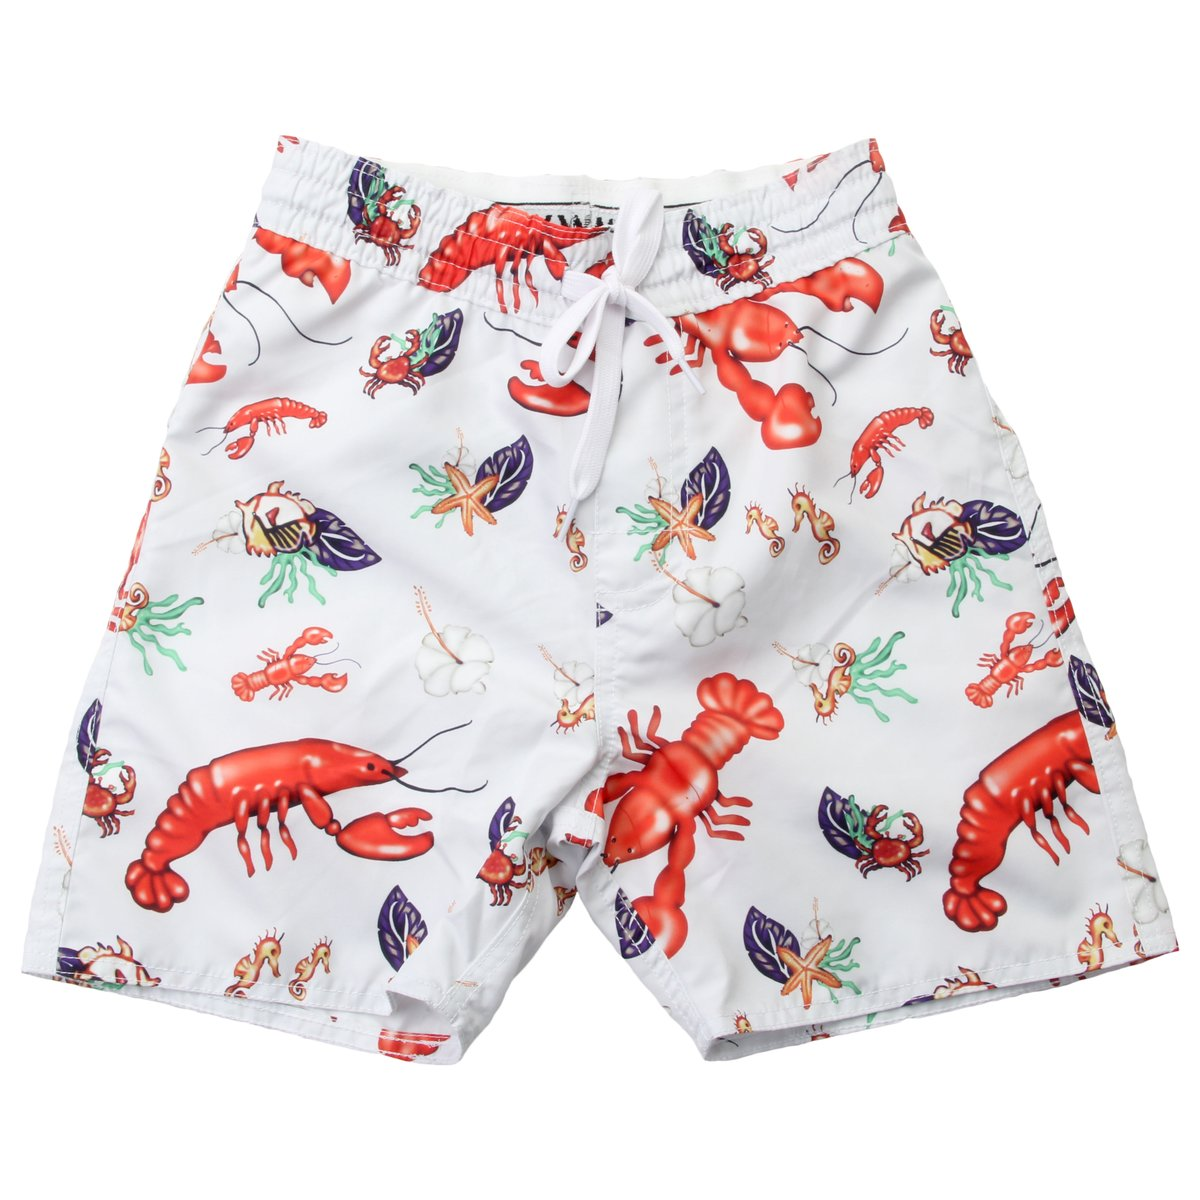 Wes and Willy Boys Swim Trunks